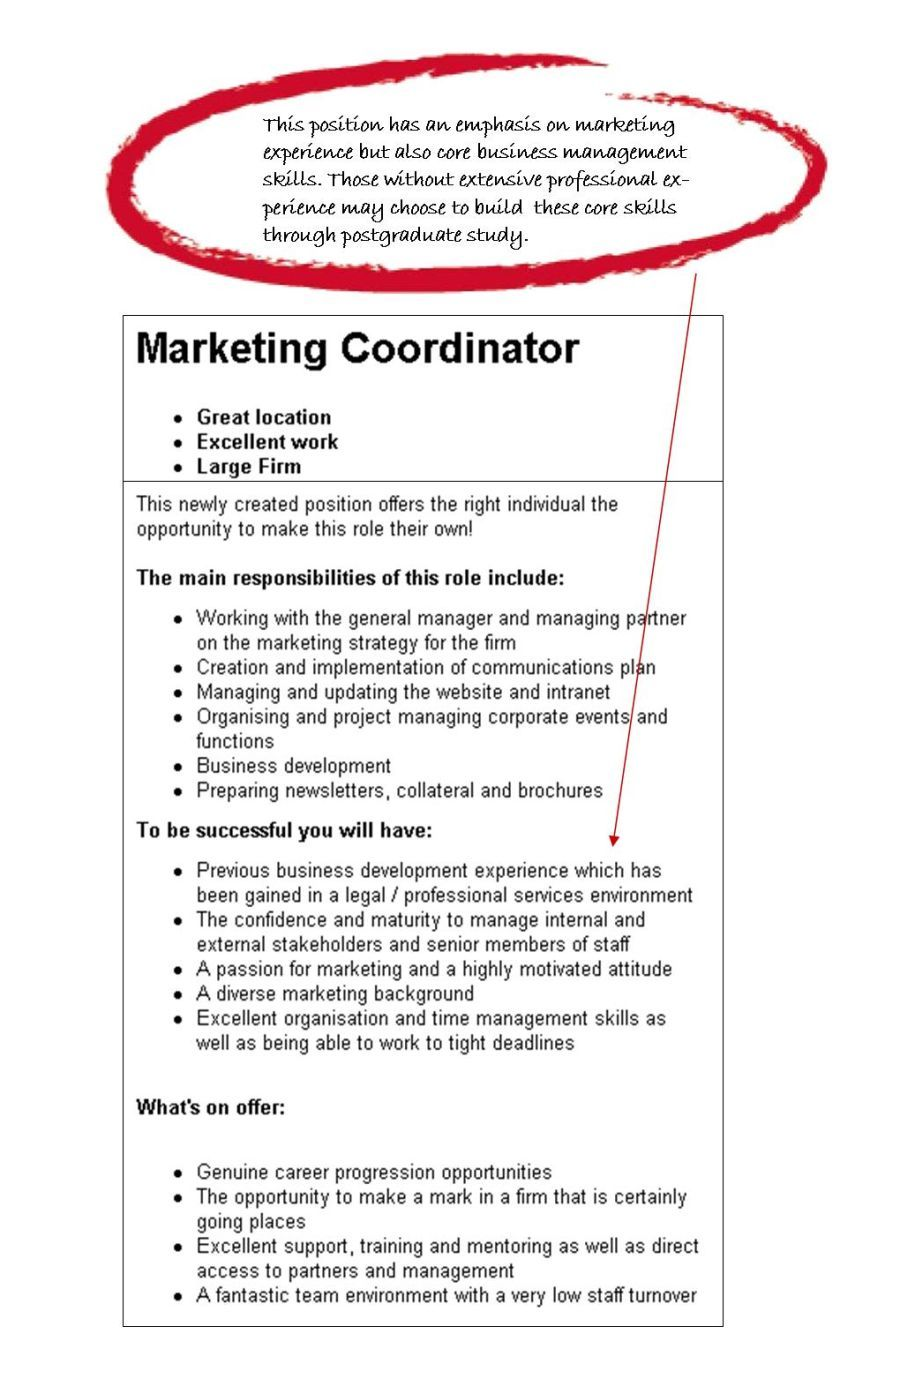 Example Resume Objective Objectives For Resume  Resume  Pinterest  Resume Objective And